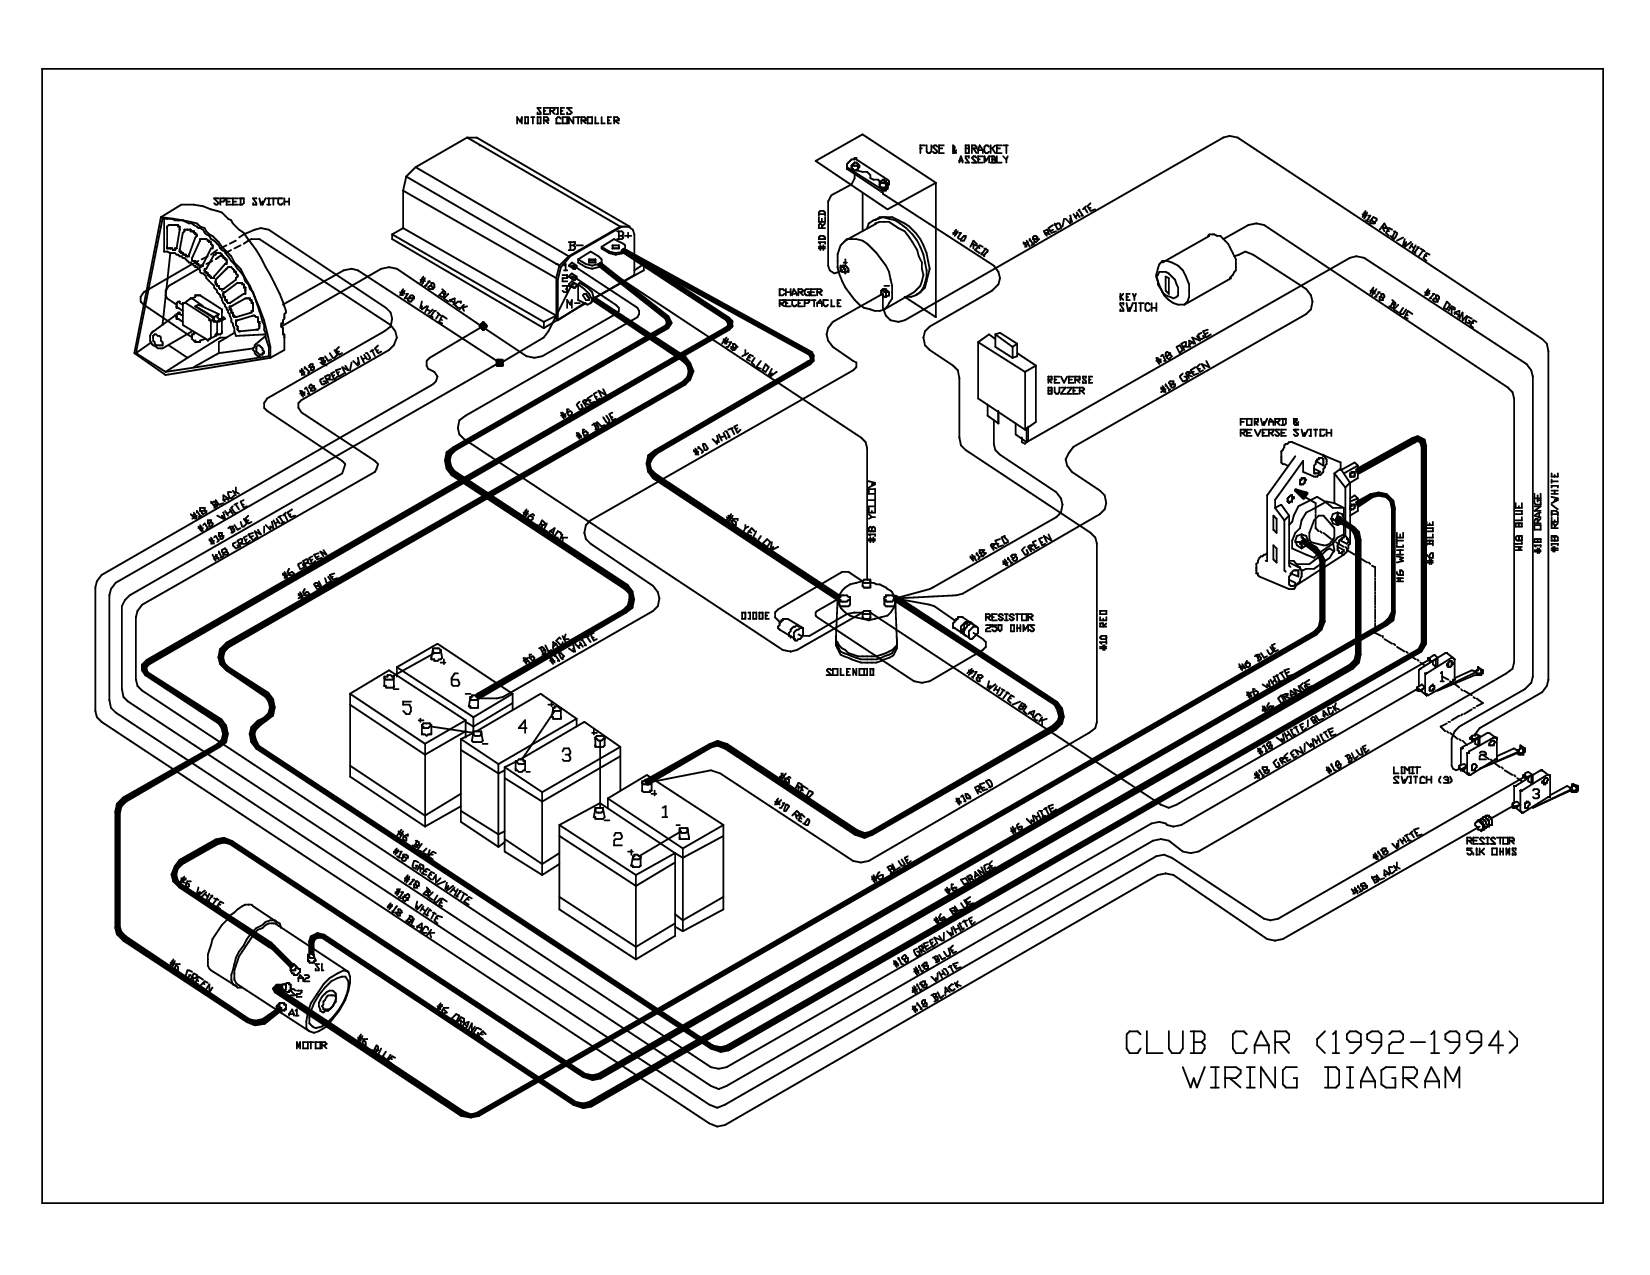 ezgo wiring diagram 50 club wiring diagram Yamaha G1 Golf Cart ezgo wiring diagram 50 club wiring diagram library1993 club car schematic diagram wiring schematic ezgo wiring